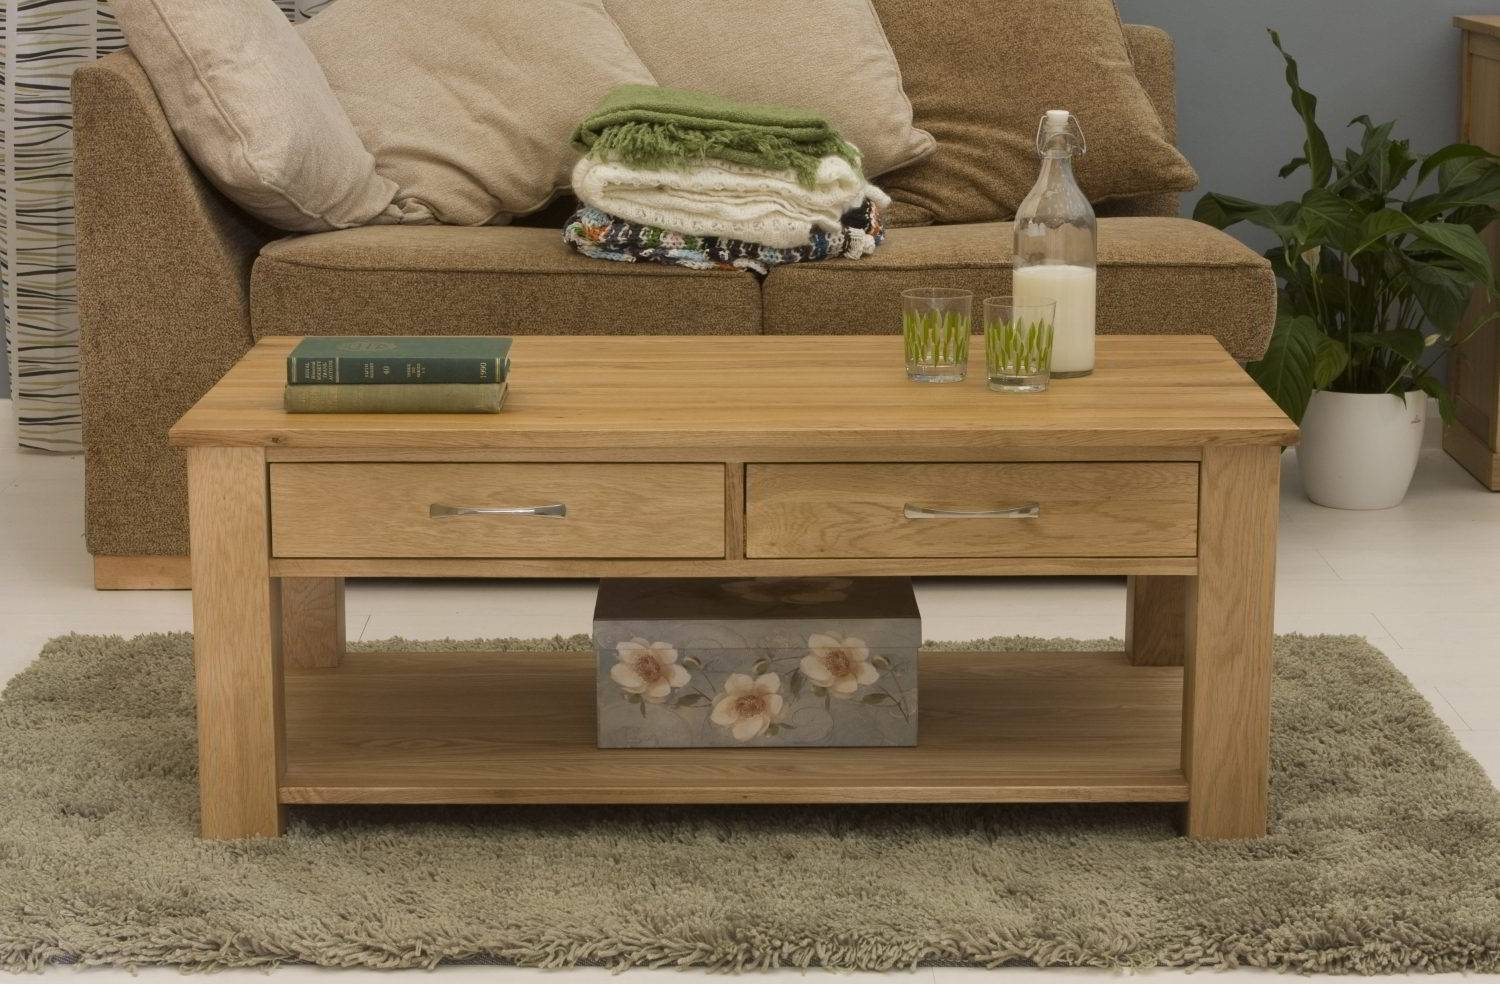 Conran Solid Oak Living Room Lounge Furniture Four Drawer Storage with Light Oak Coffee Tables (Image 3 of 15)